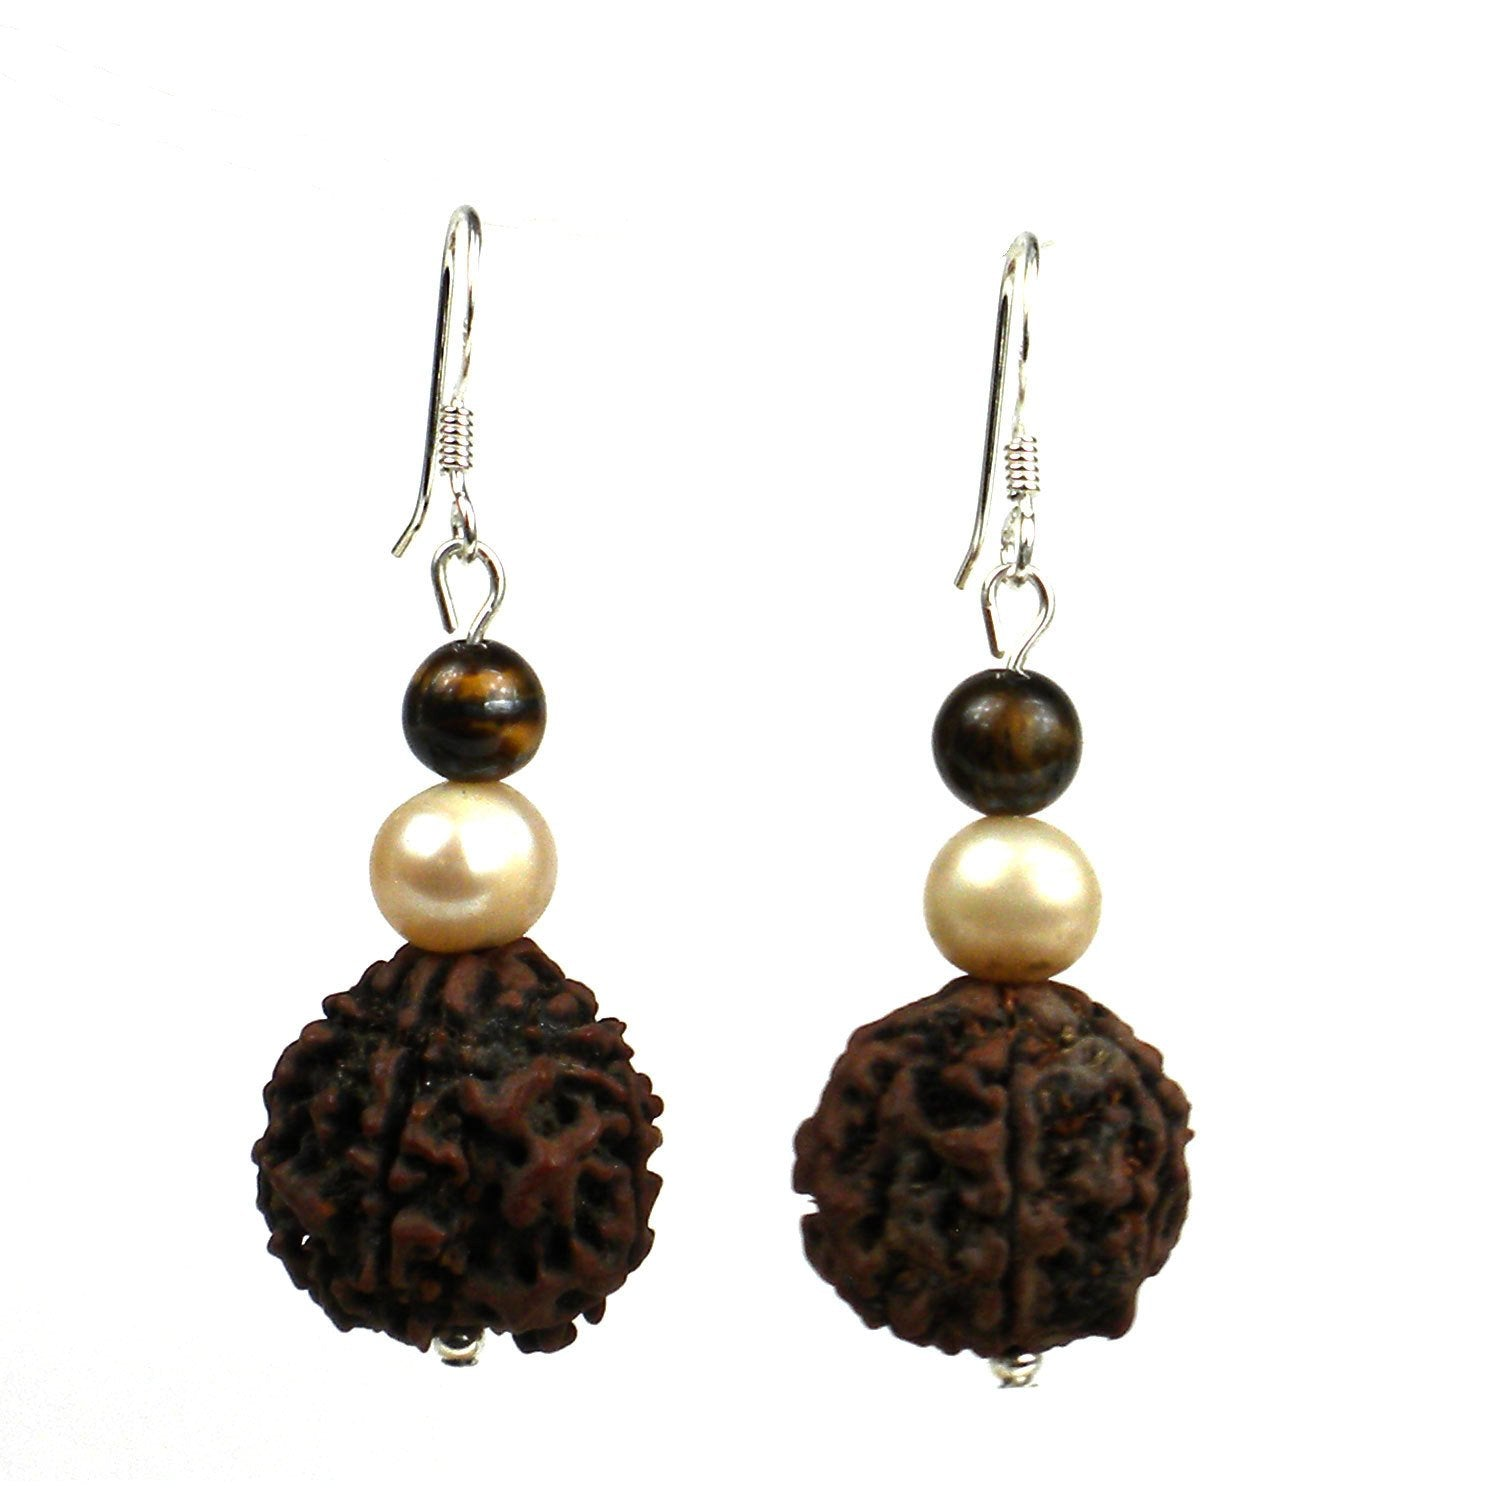 Boho Jewelry Collection Earrings, Rudraksha & Pearl